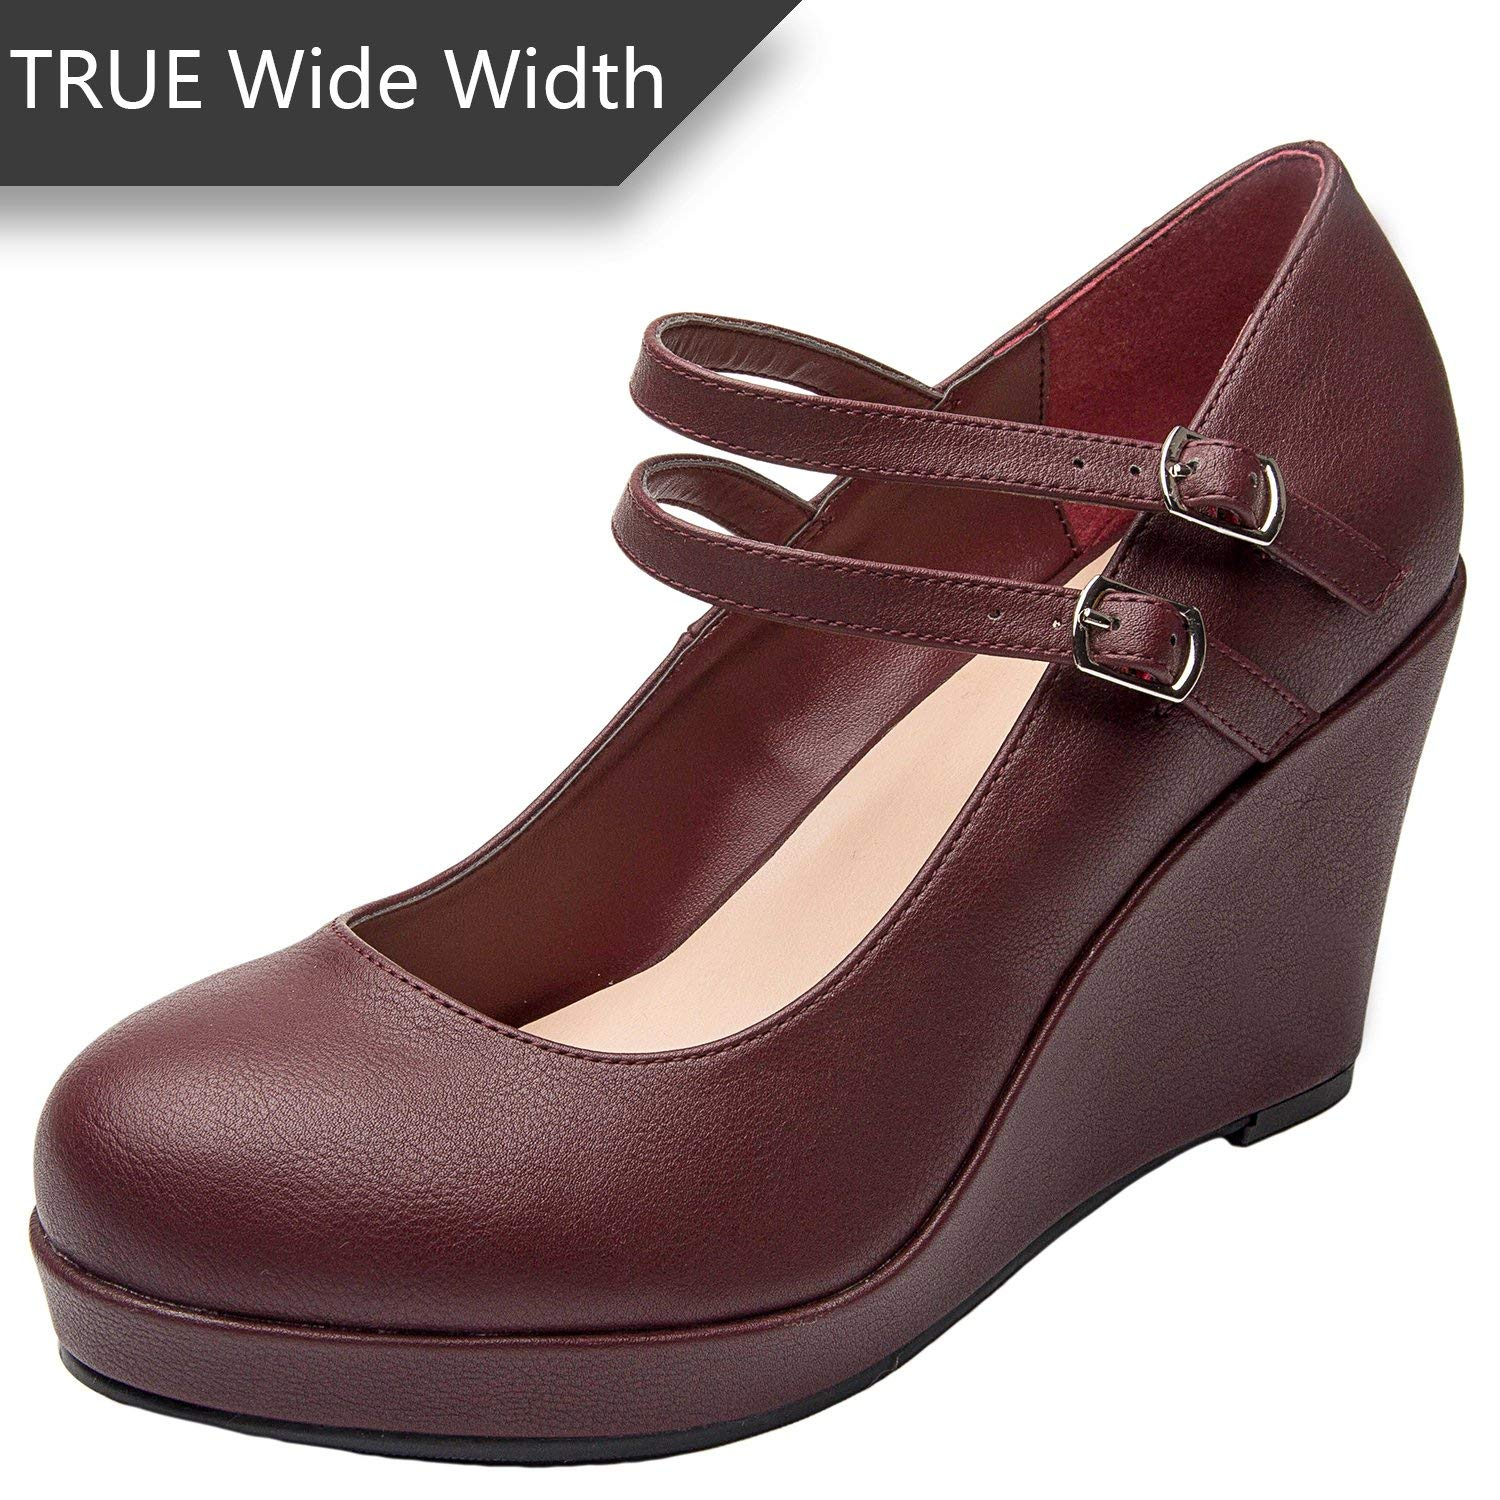 aafc9d8cb79 Get Quotations · Luoika Women s Wide Width Wedge Shoes - Mary Jane Ankle  Buckle Double Strap Round Closed Toe